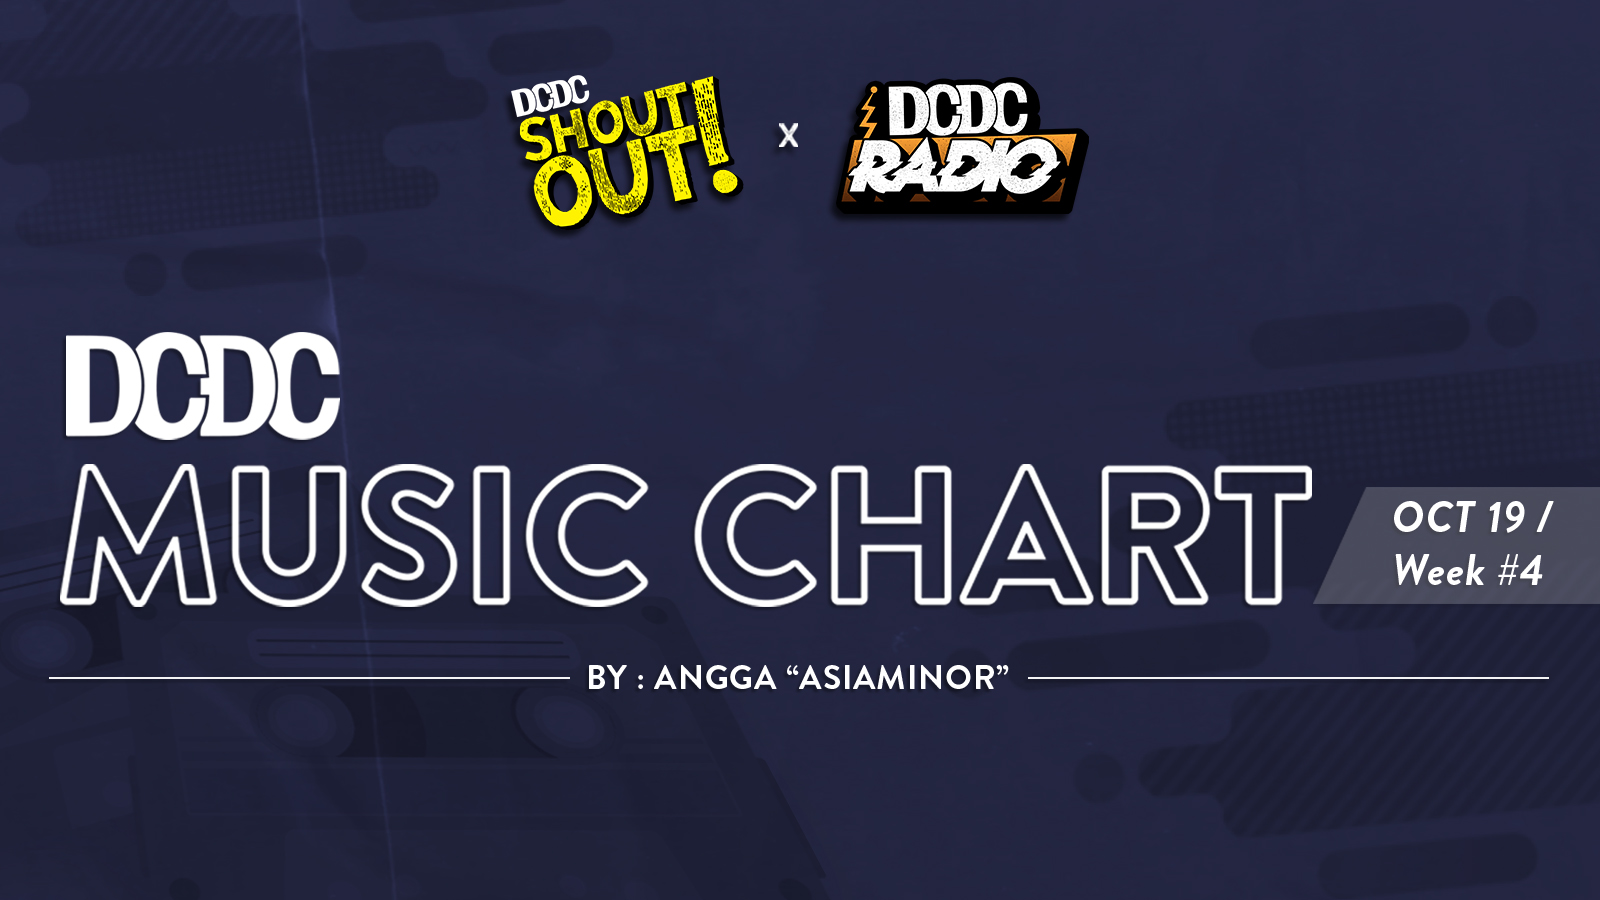 DCDC Music Chart - #4th Week of October 2019